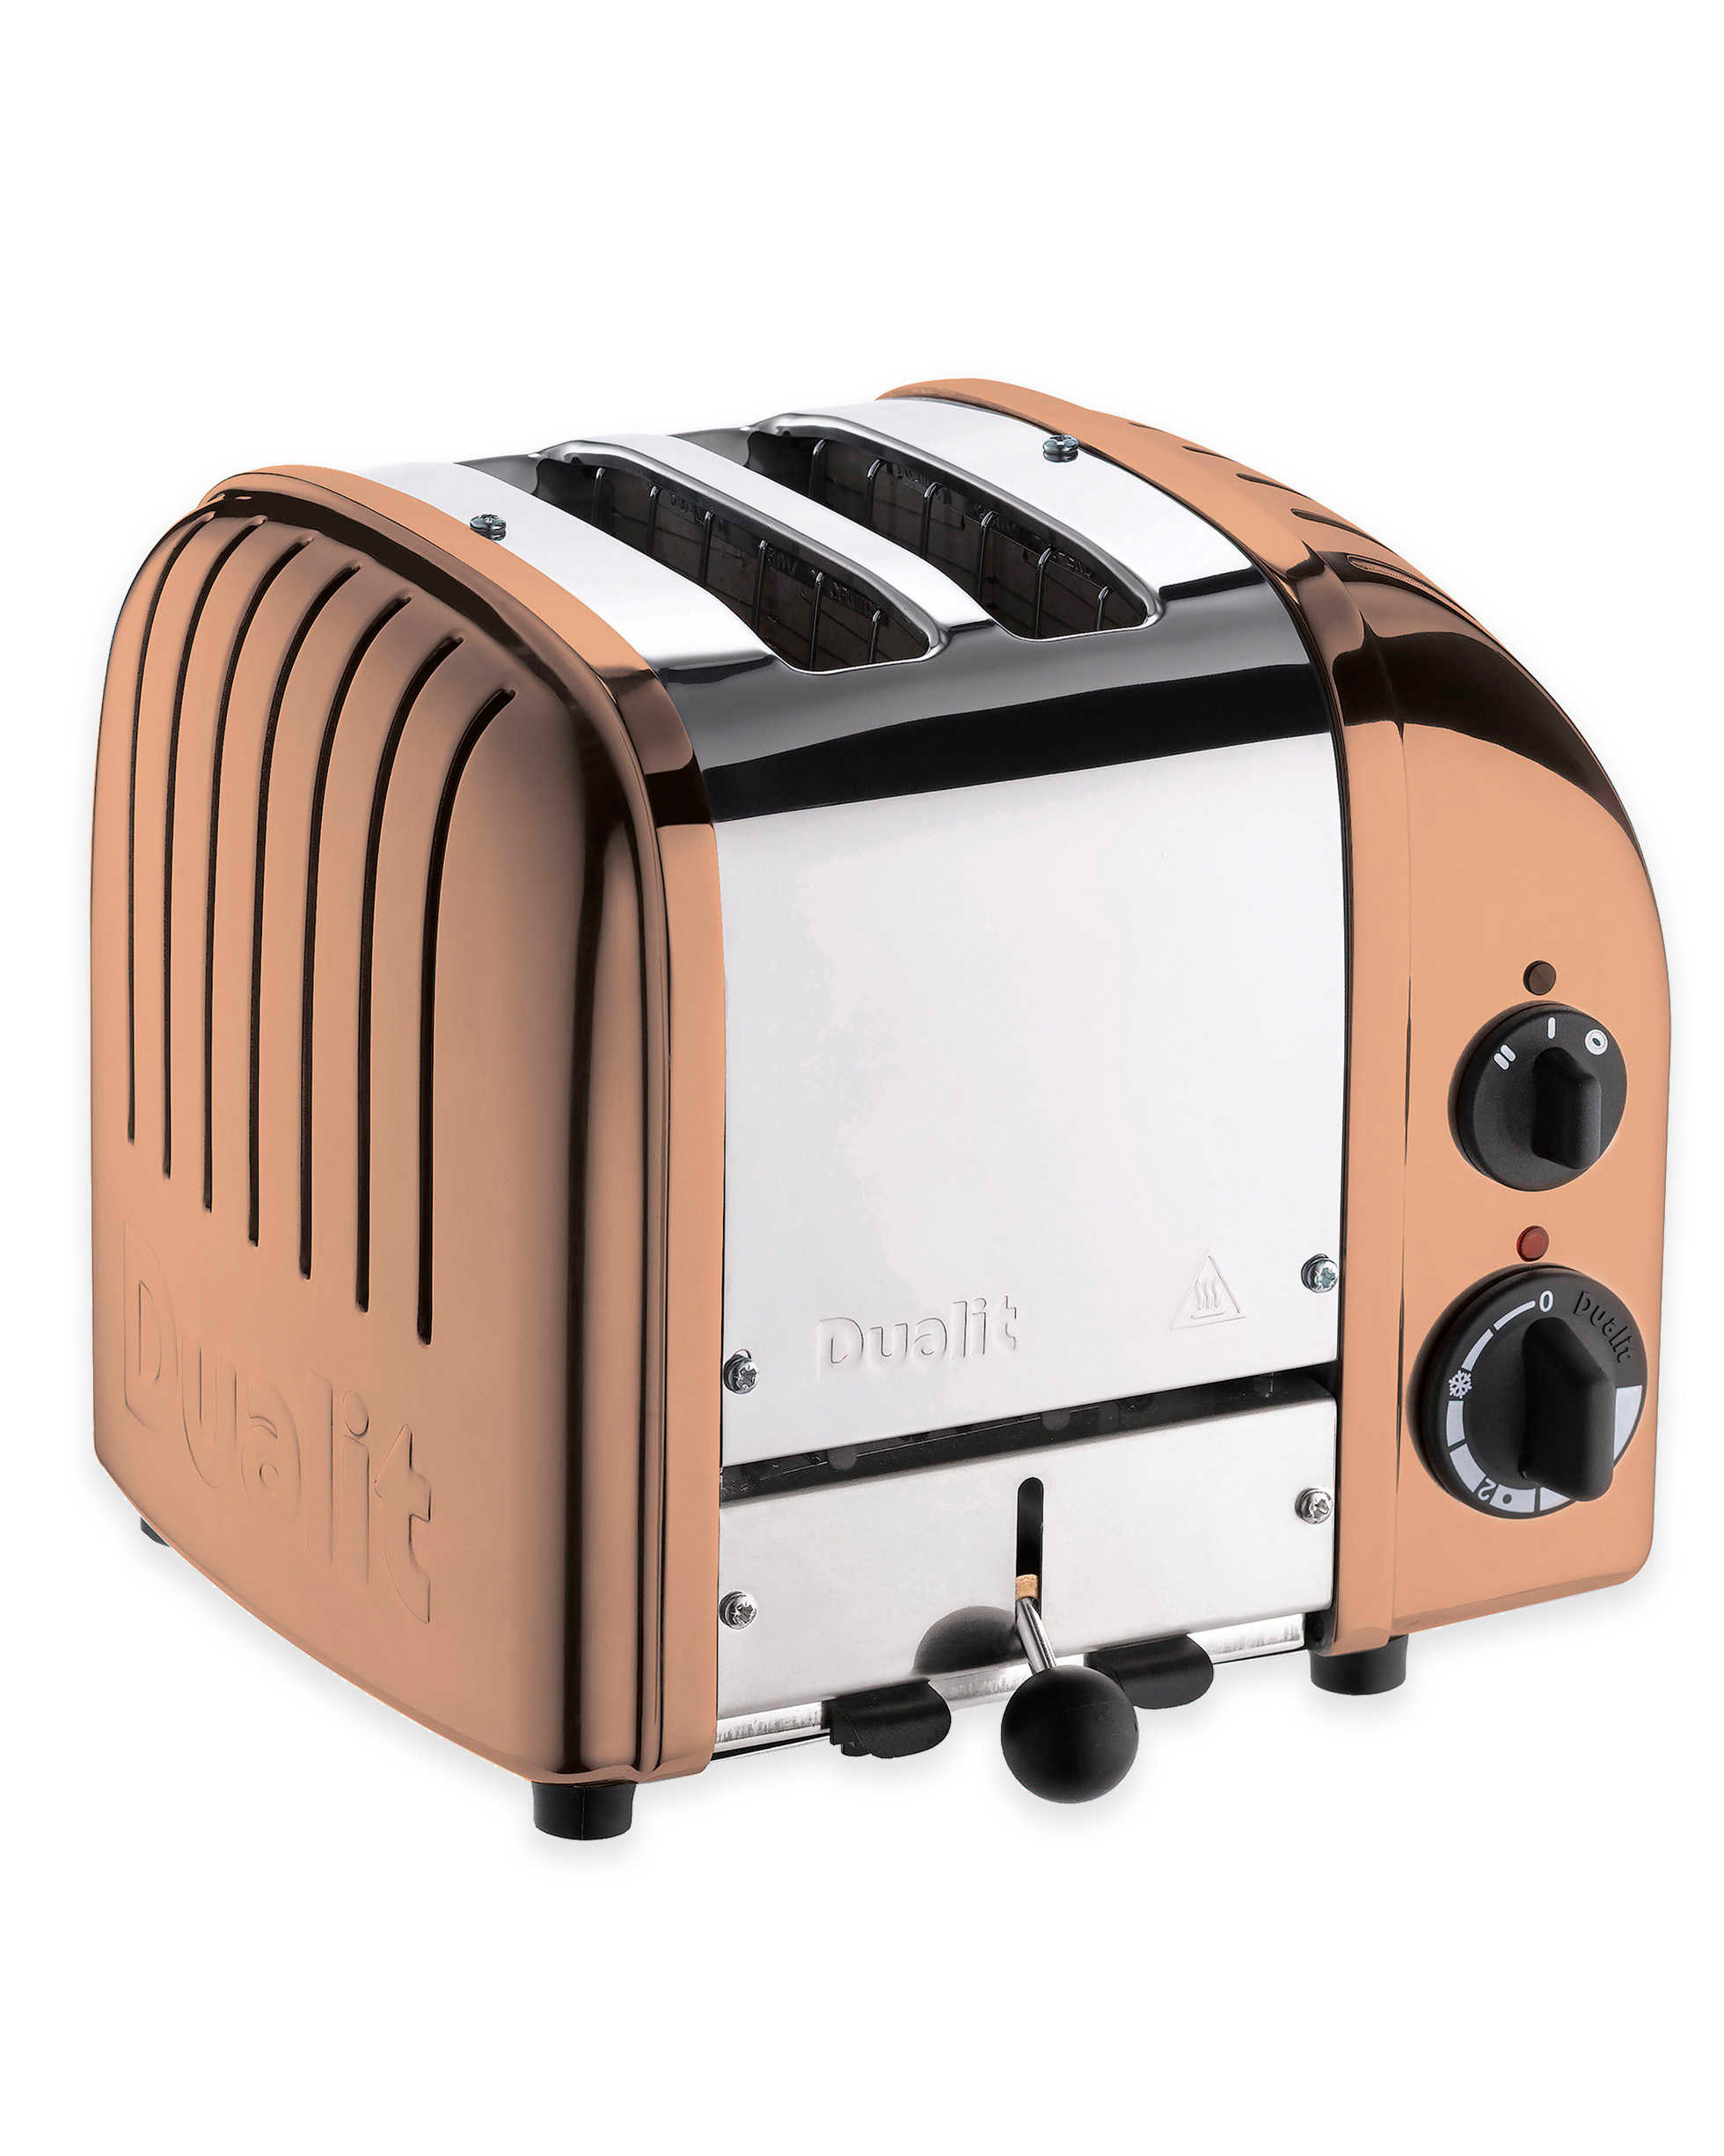 copper-registry-dualit-new-gen-toaster-0116.jpg